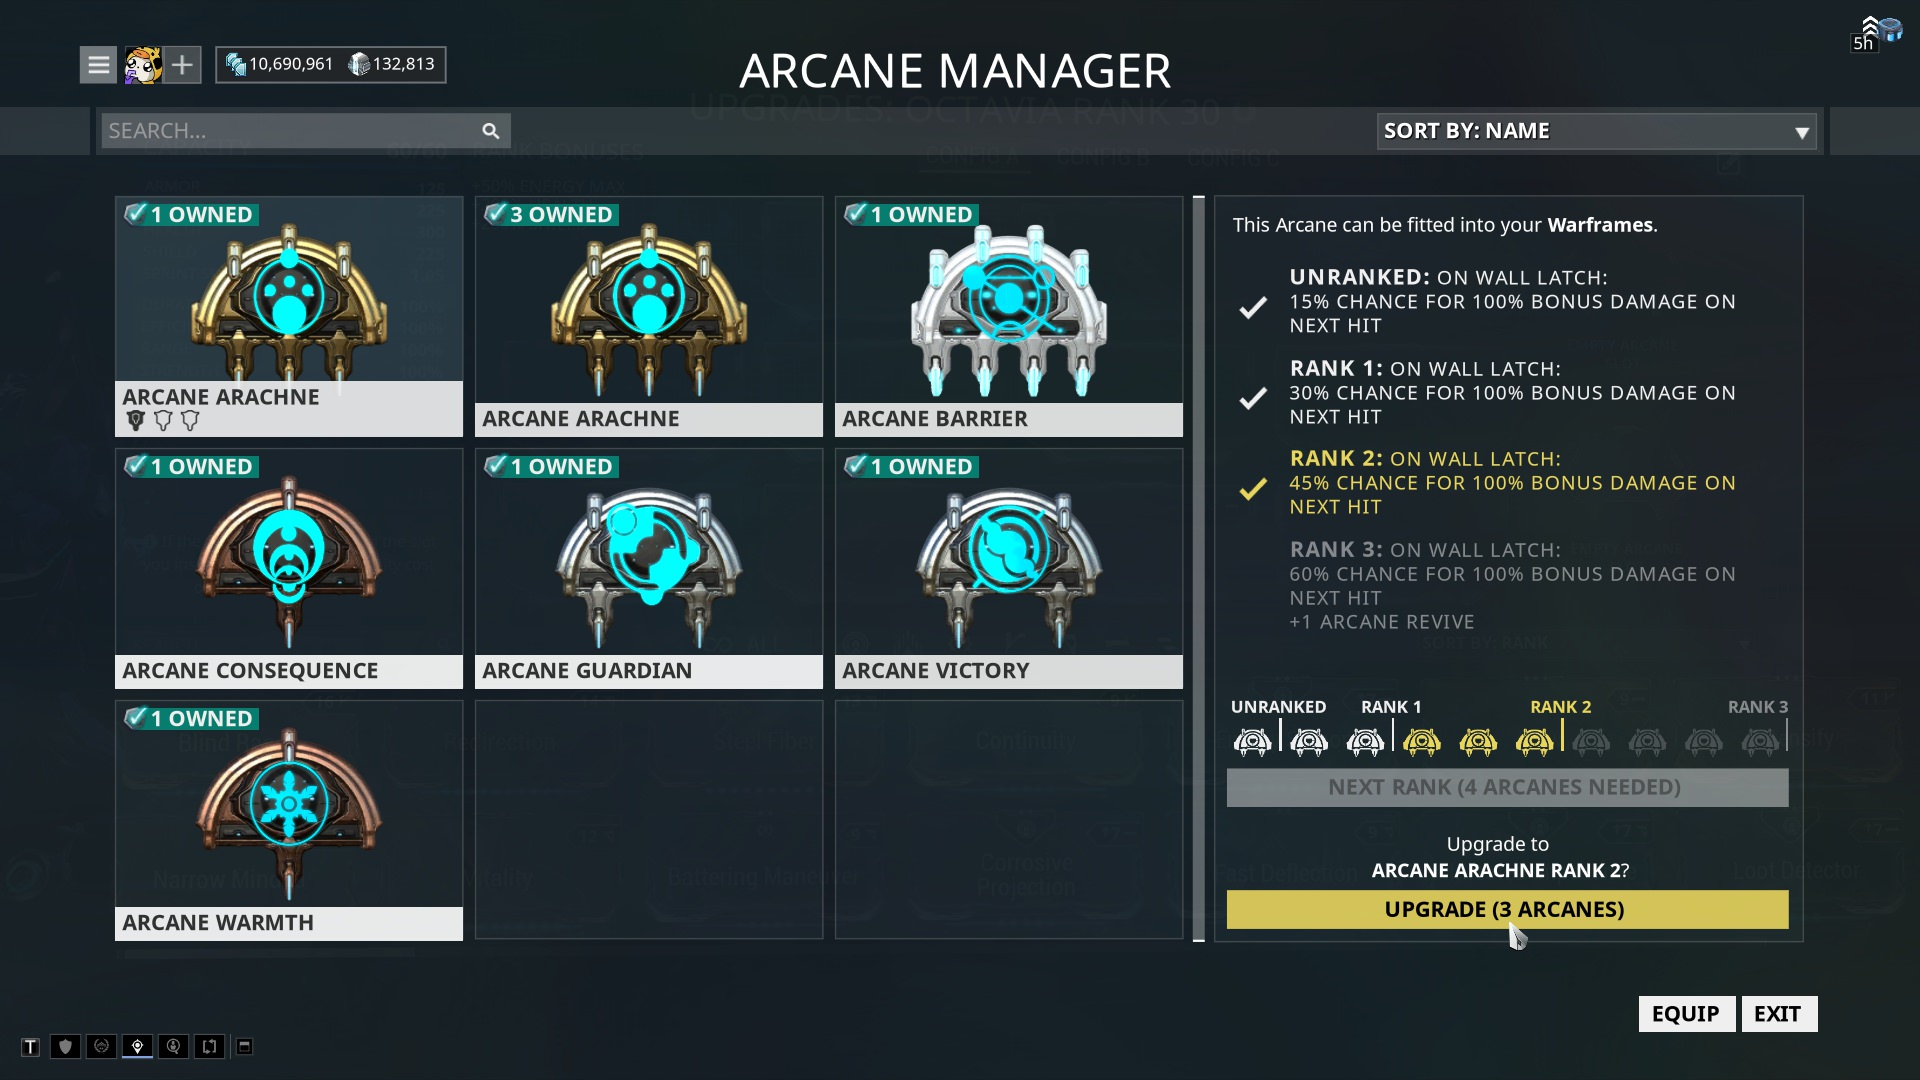 Arcane Enhancement | WARFRAME Wiki | FANDOM powered by Wikia